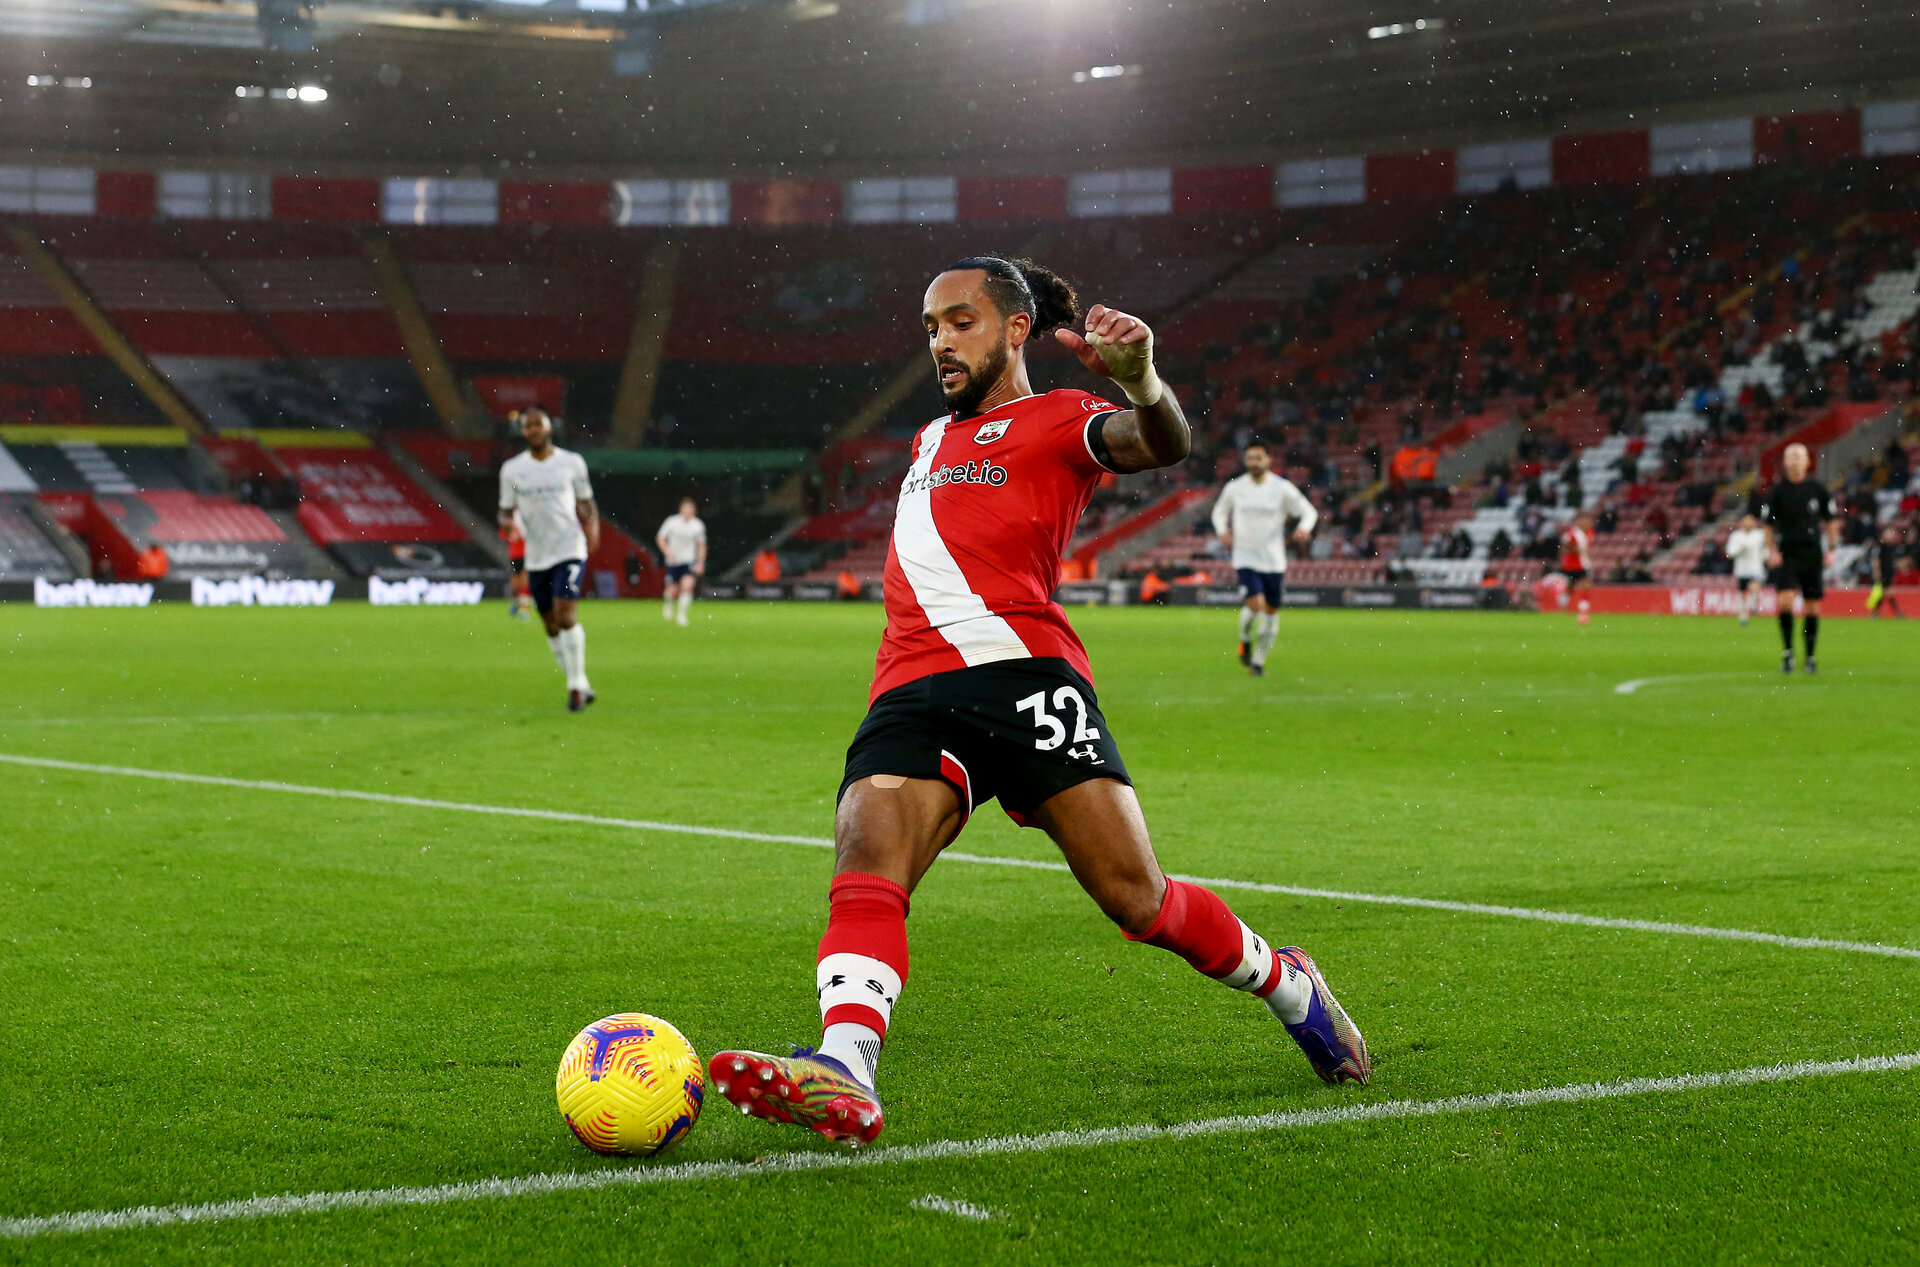 SOUTHAMPTON, ENGLAND - DECEMBER 19: Theo Walcott of Southampton during the Premier League match between Southampton and Manchester City at St Mary's Stadium on December 19, 2020 in Southampton, England. A limited number of fans (2000) are welcomed back to stadiums to watch elite football across England. This was following easing of restrictions on spectators in tiers one and two areas only. (Photo by Matt Watson/Southampton FC via Getty Images)